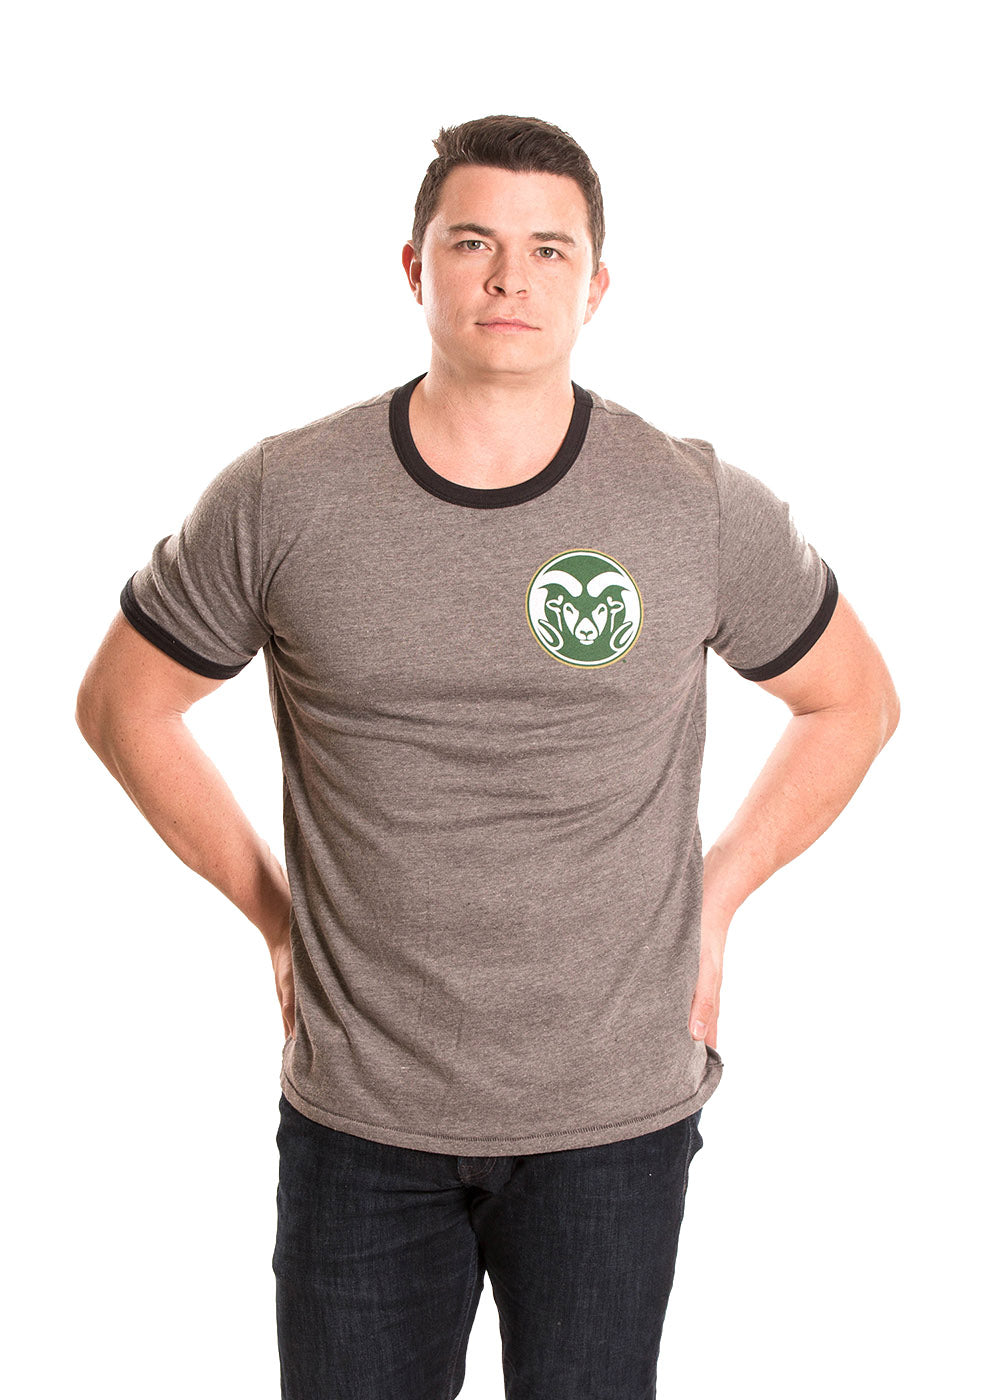 COLORADO STATE UNIVERSITY Rams Men's Ringer Tee